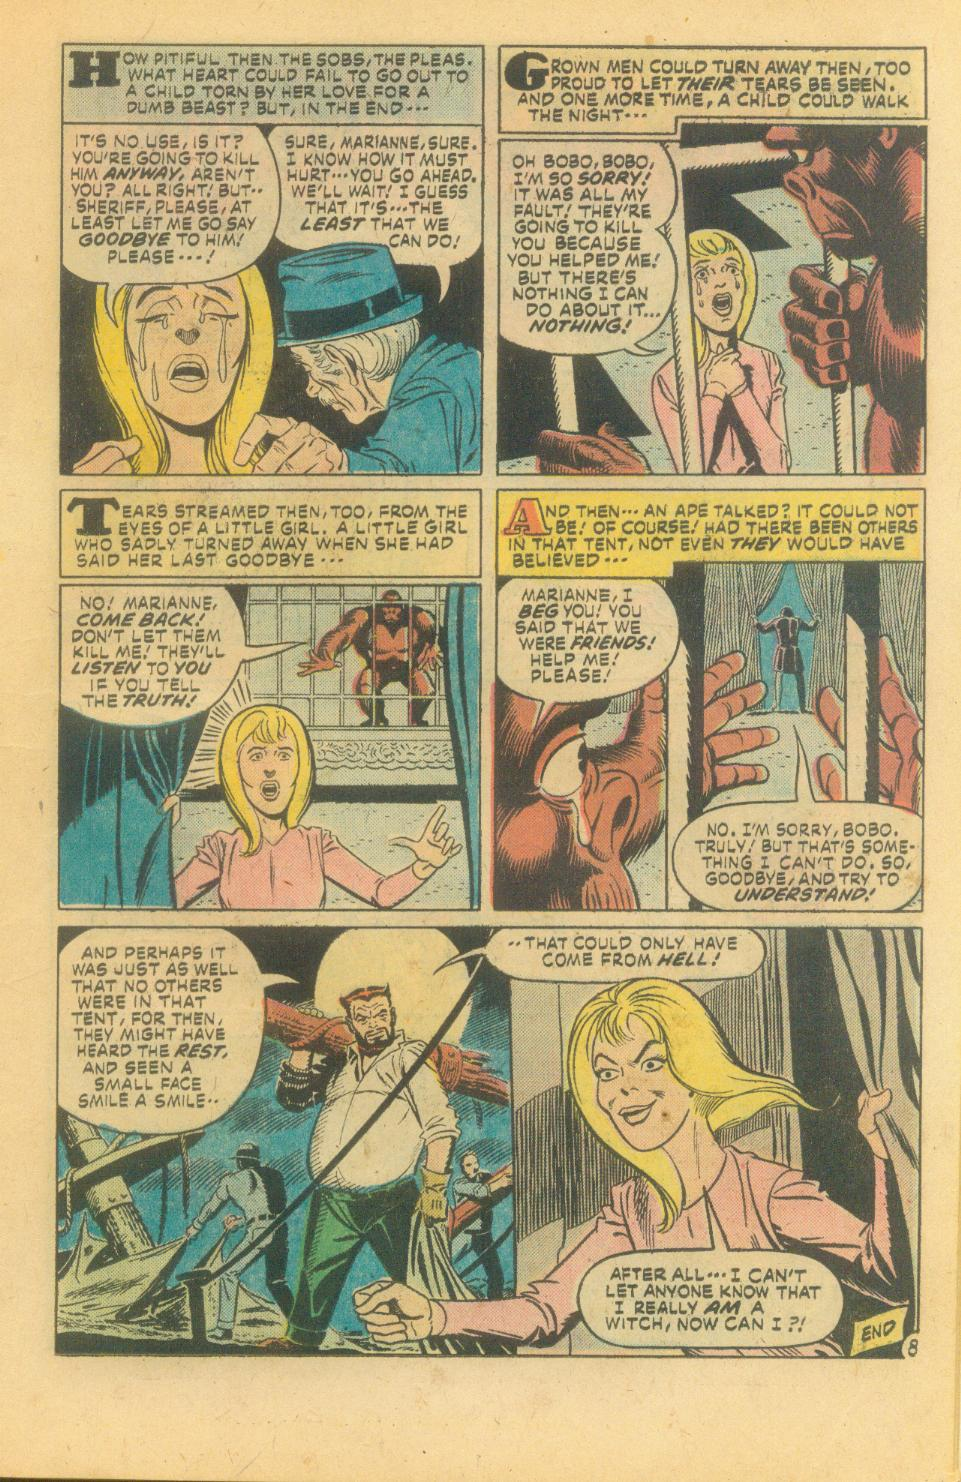 House of Secrets (1956) #139 pg8, penciled by Steve Ditko & inked by Mike Royer.